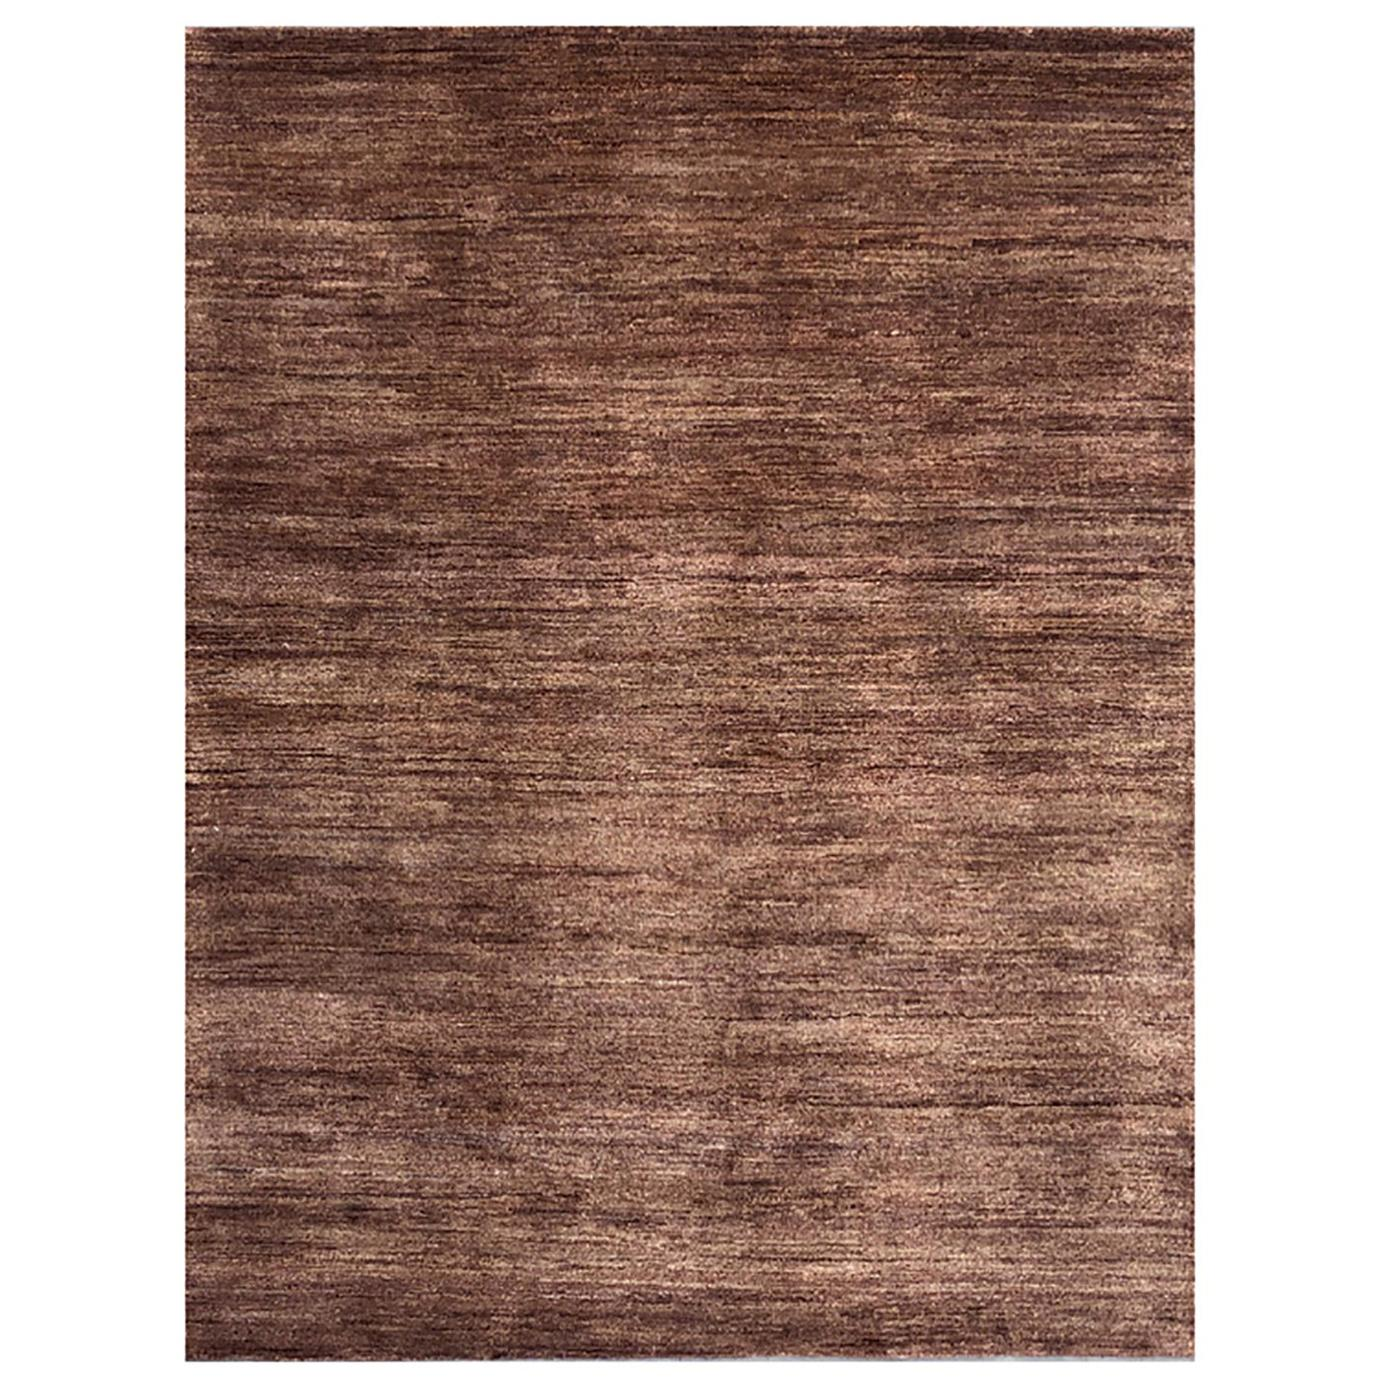 Handmade Modern Rug Brown and Gray Plain by Rug & Kilim